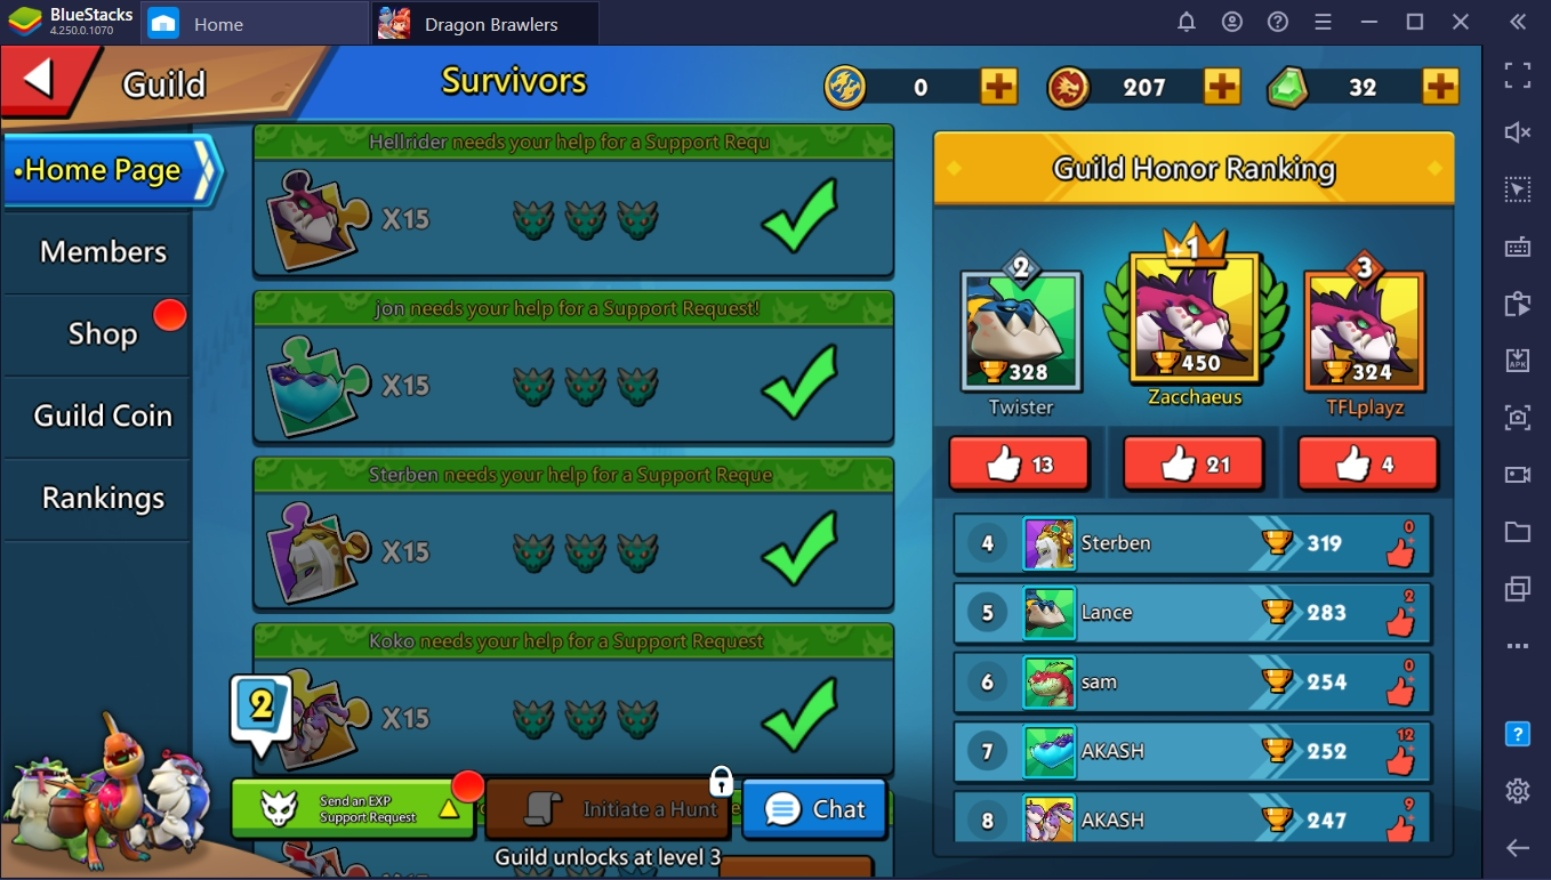 Beginner's Guide To Playing Dragon Brawlers